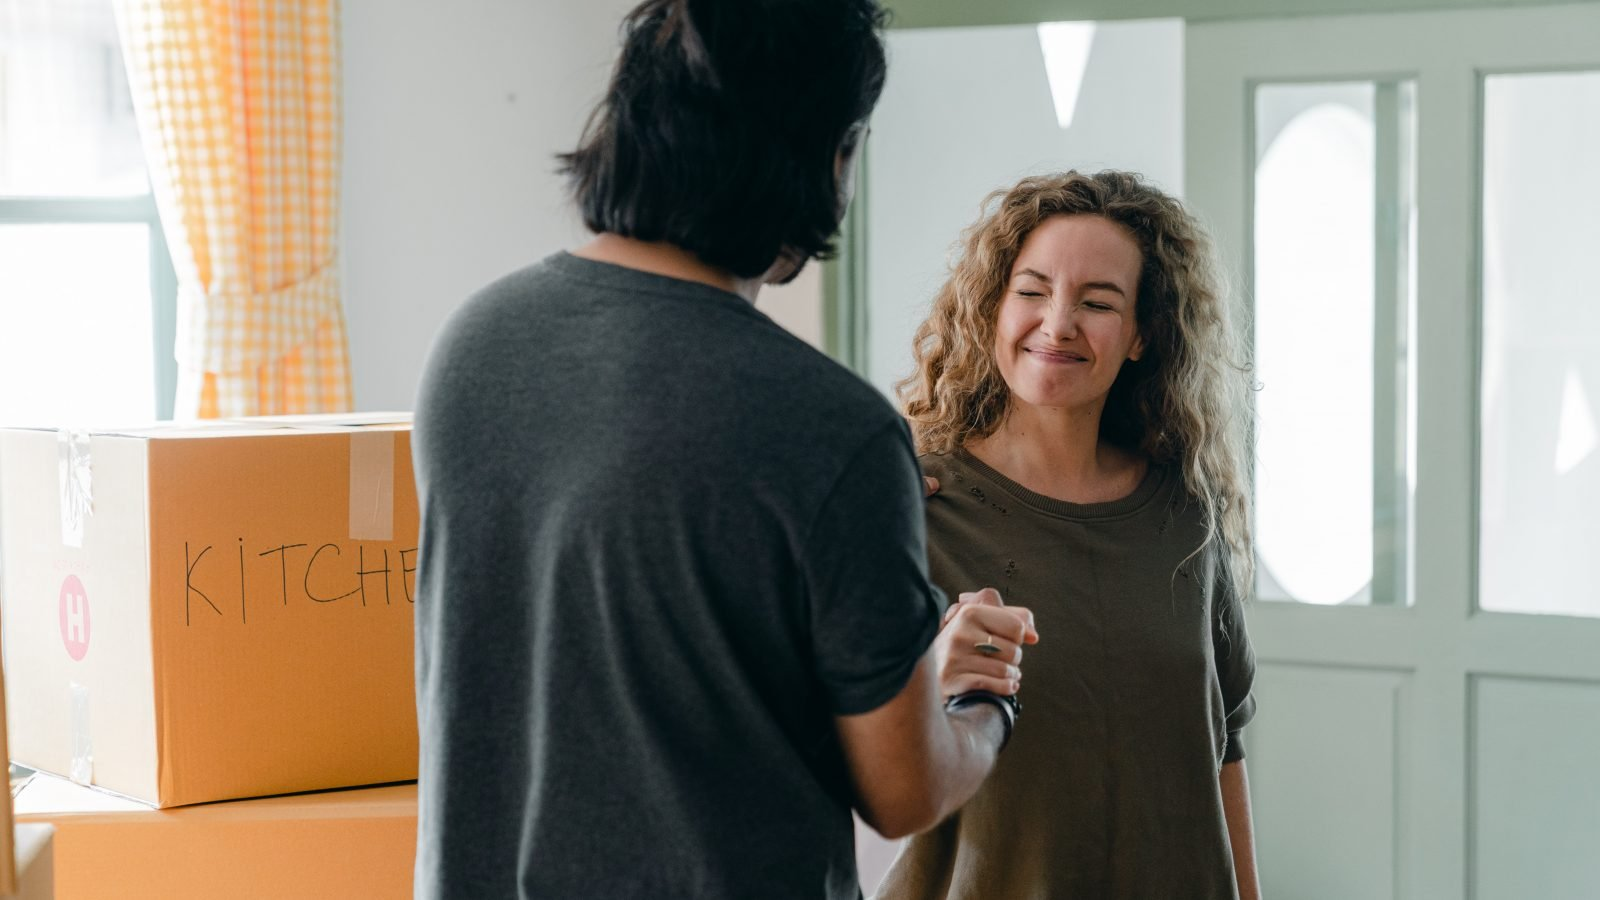 Signs You're Ready To Move In With a Partner